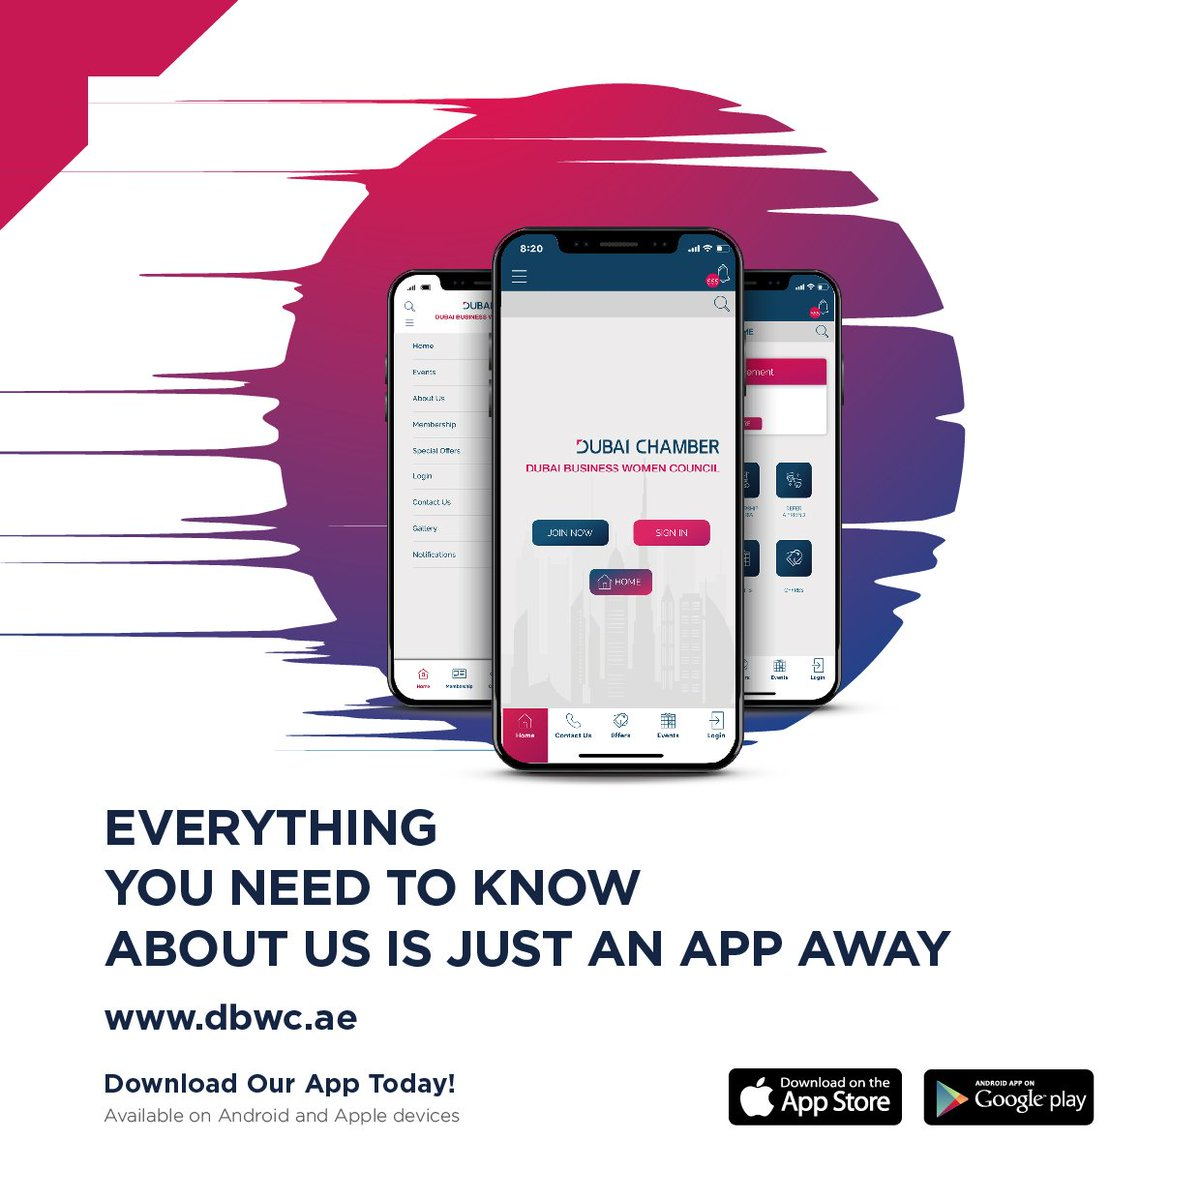 dubai-women-business-council-launches-new-smart-app-with-exclusive-features-for-its-members